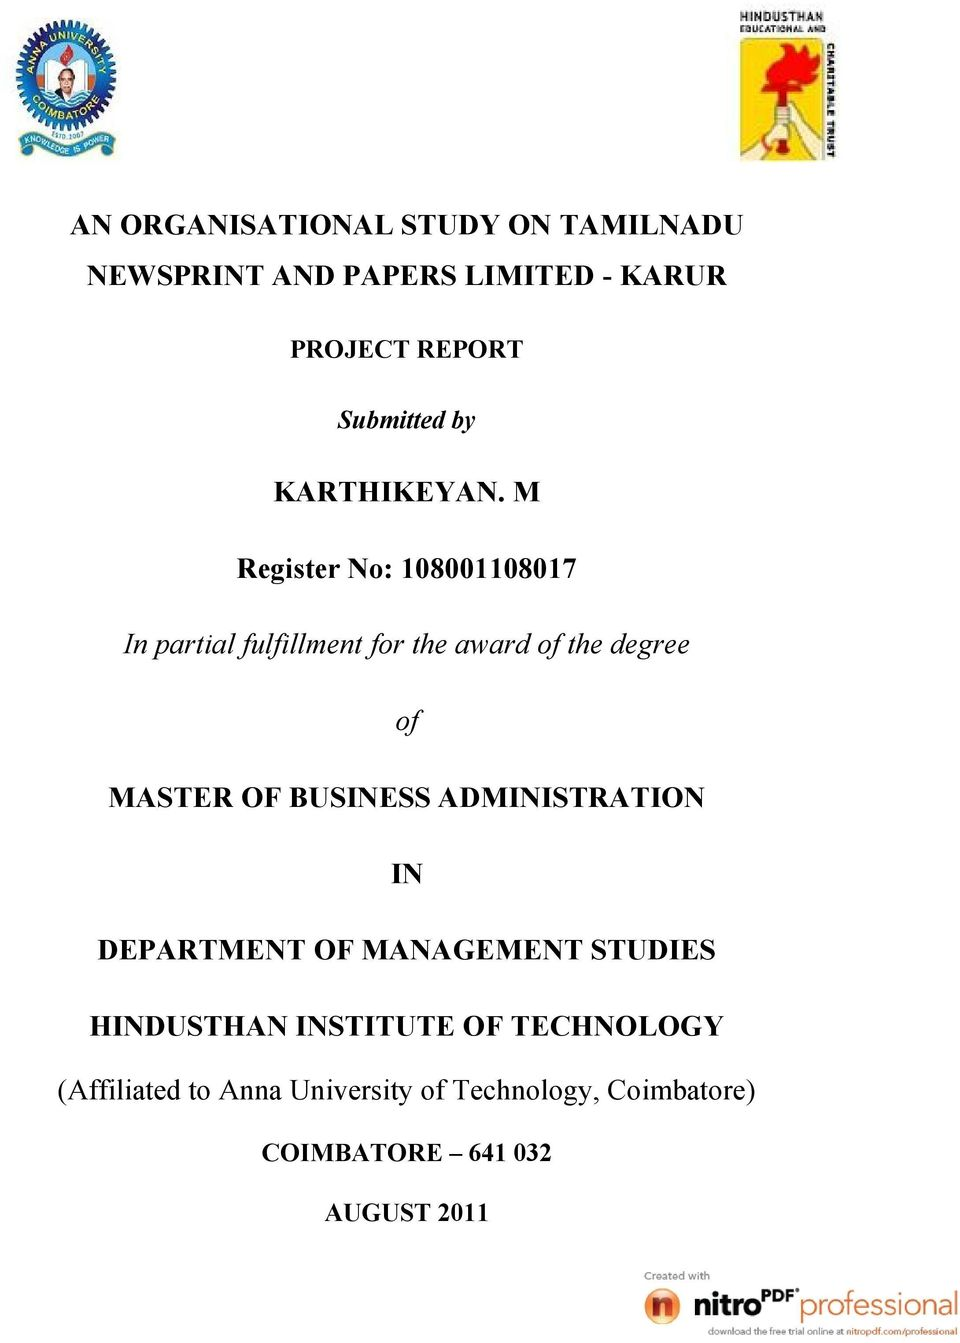 AN ORGANISATIONAL STUDY ON TAMILNADU NEWSPRINT AND PAPERS LIMITED